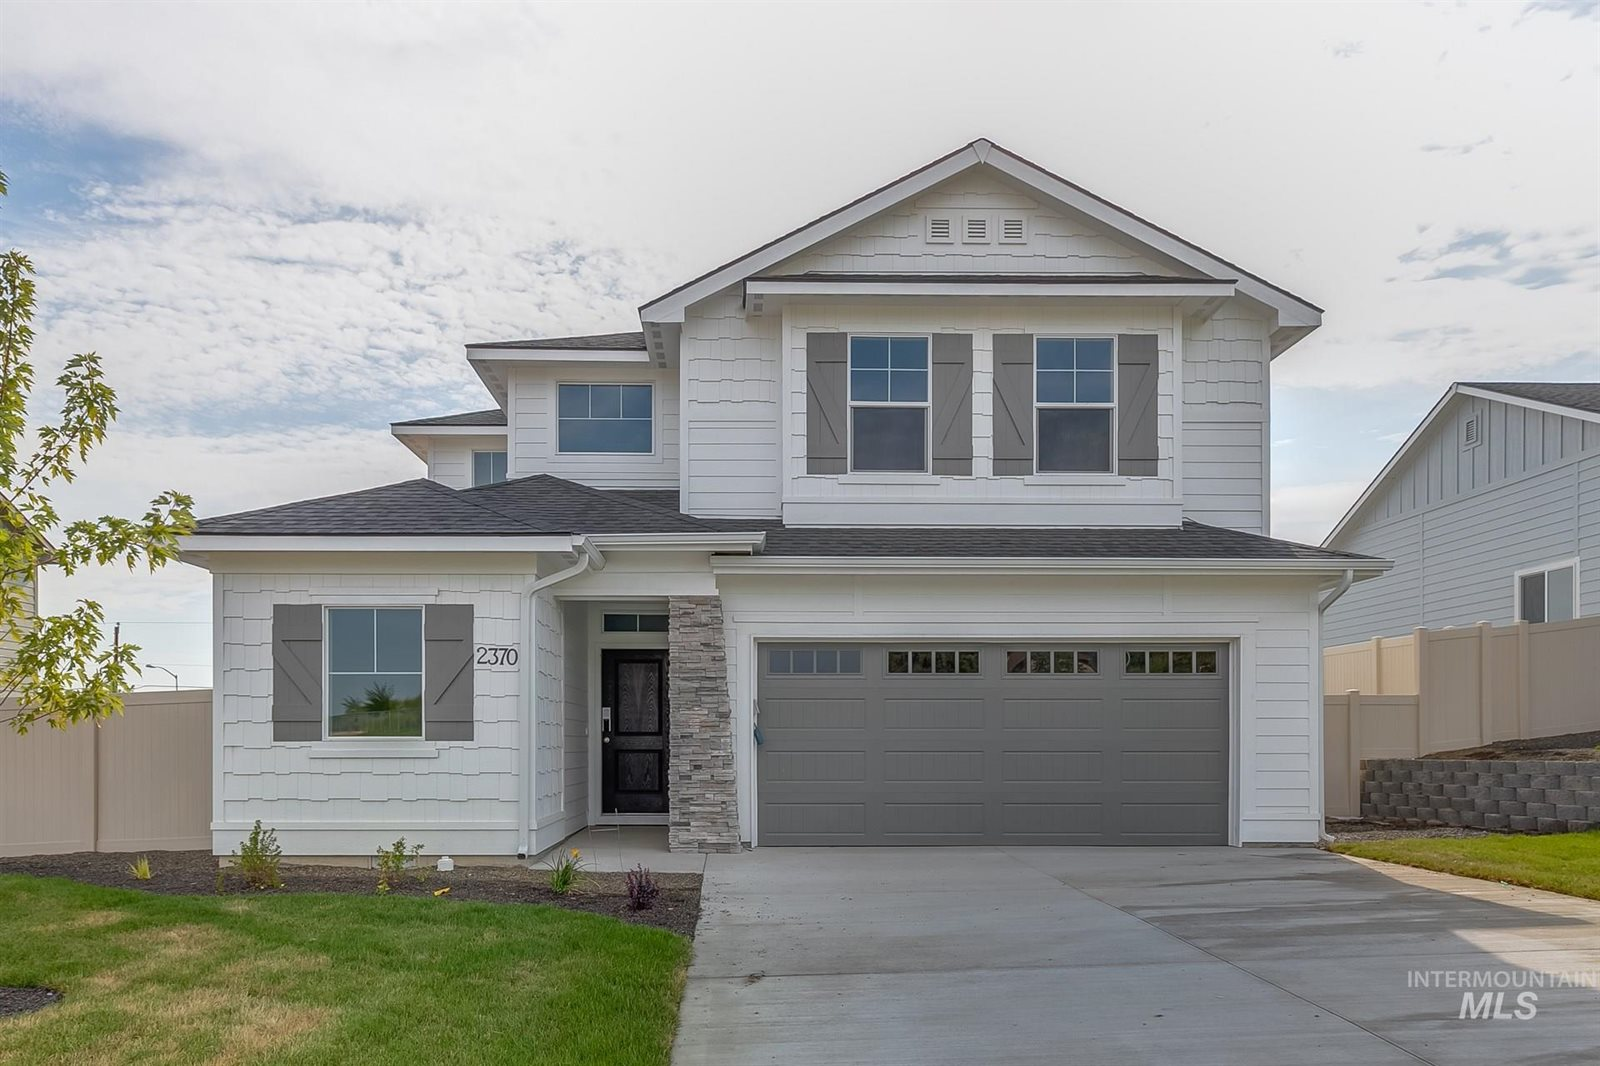 4391 West Sunny Cove St, Meridian, ID 83646